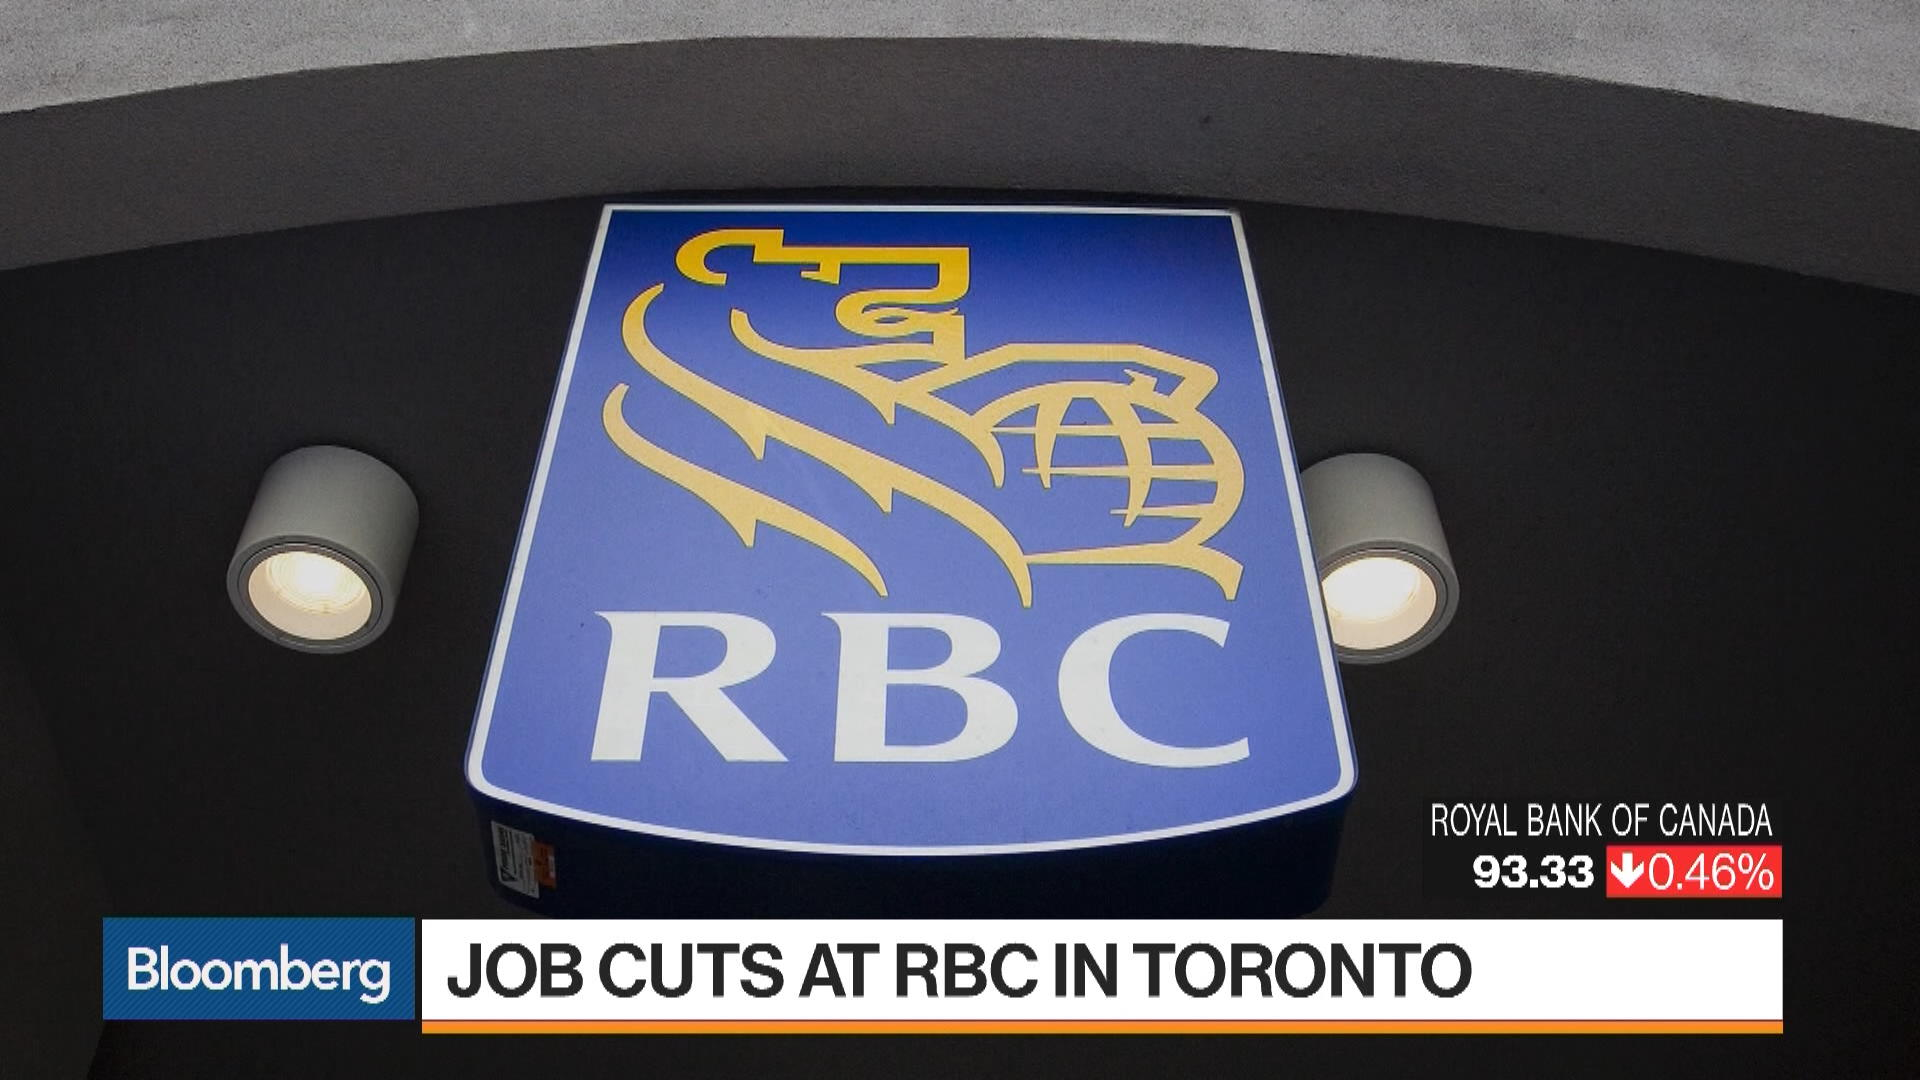 rbc position Search job openings at rbc 2307 rbc jobs including salaries, ratings, and  reviews, posted by rbc employees.